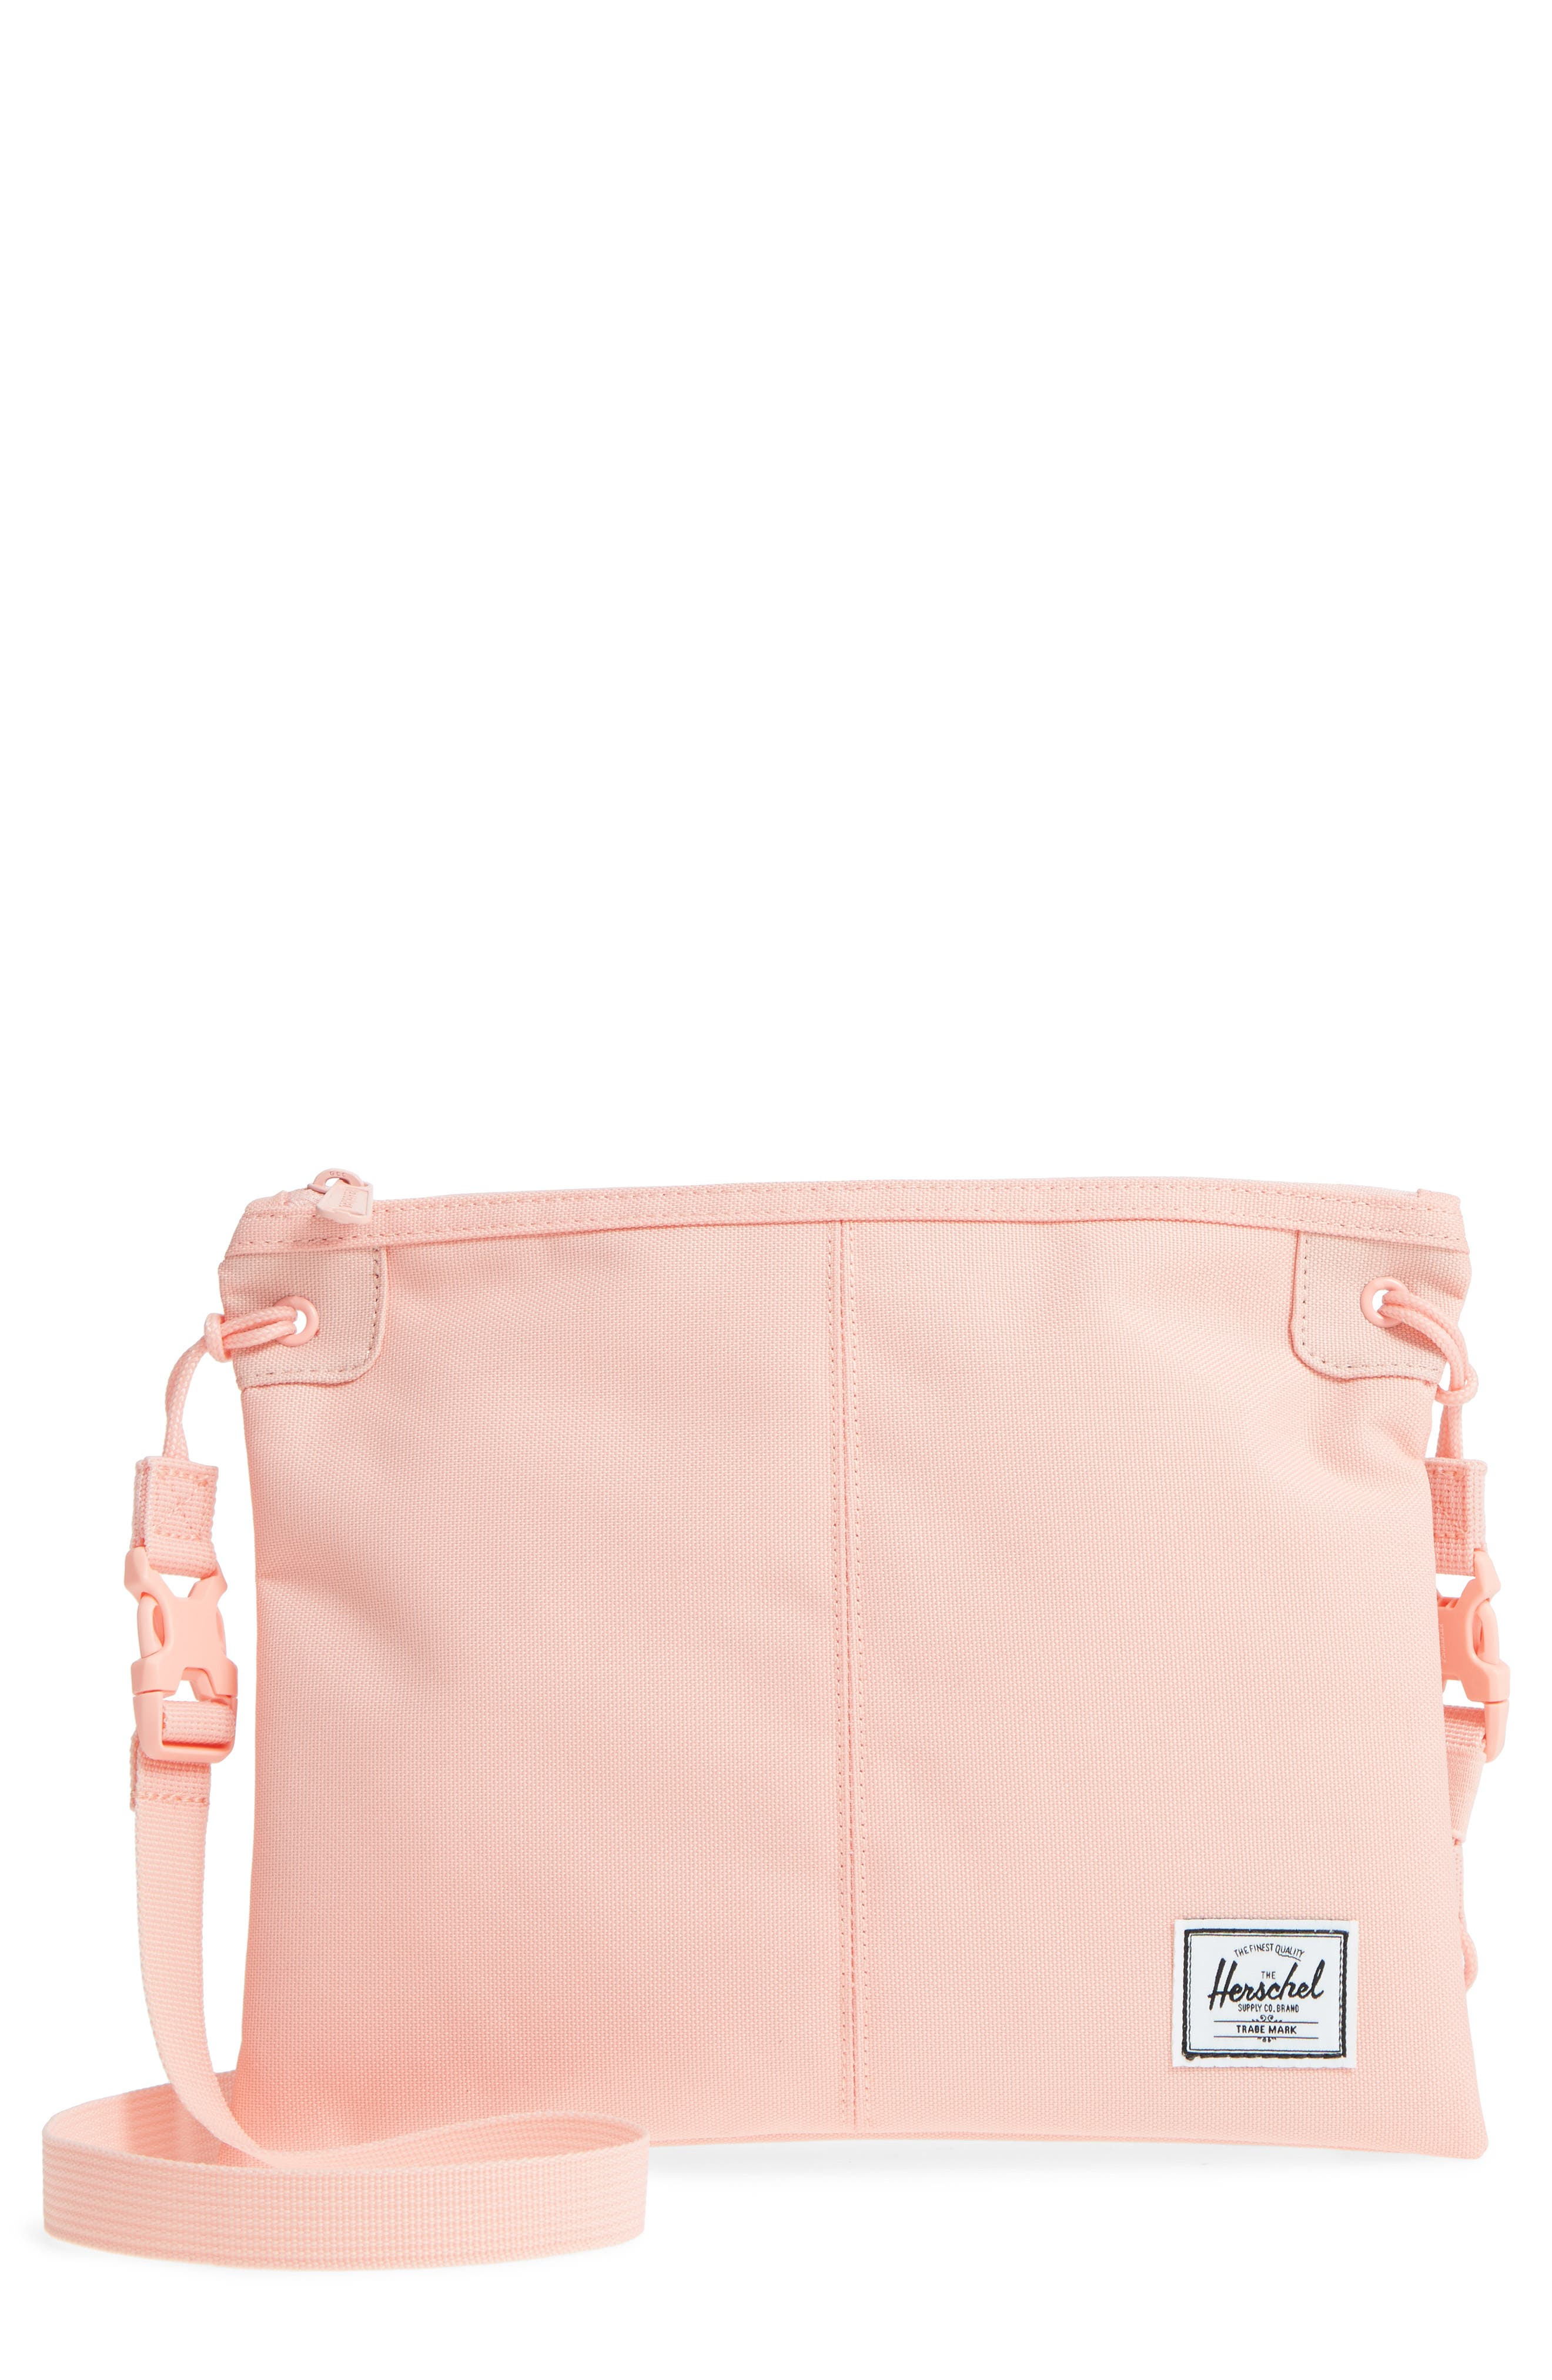 Herschel Supply Co. Alder Pouch Crossbody